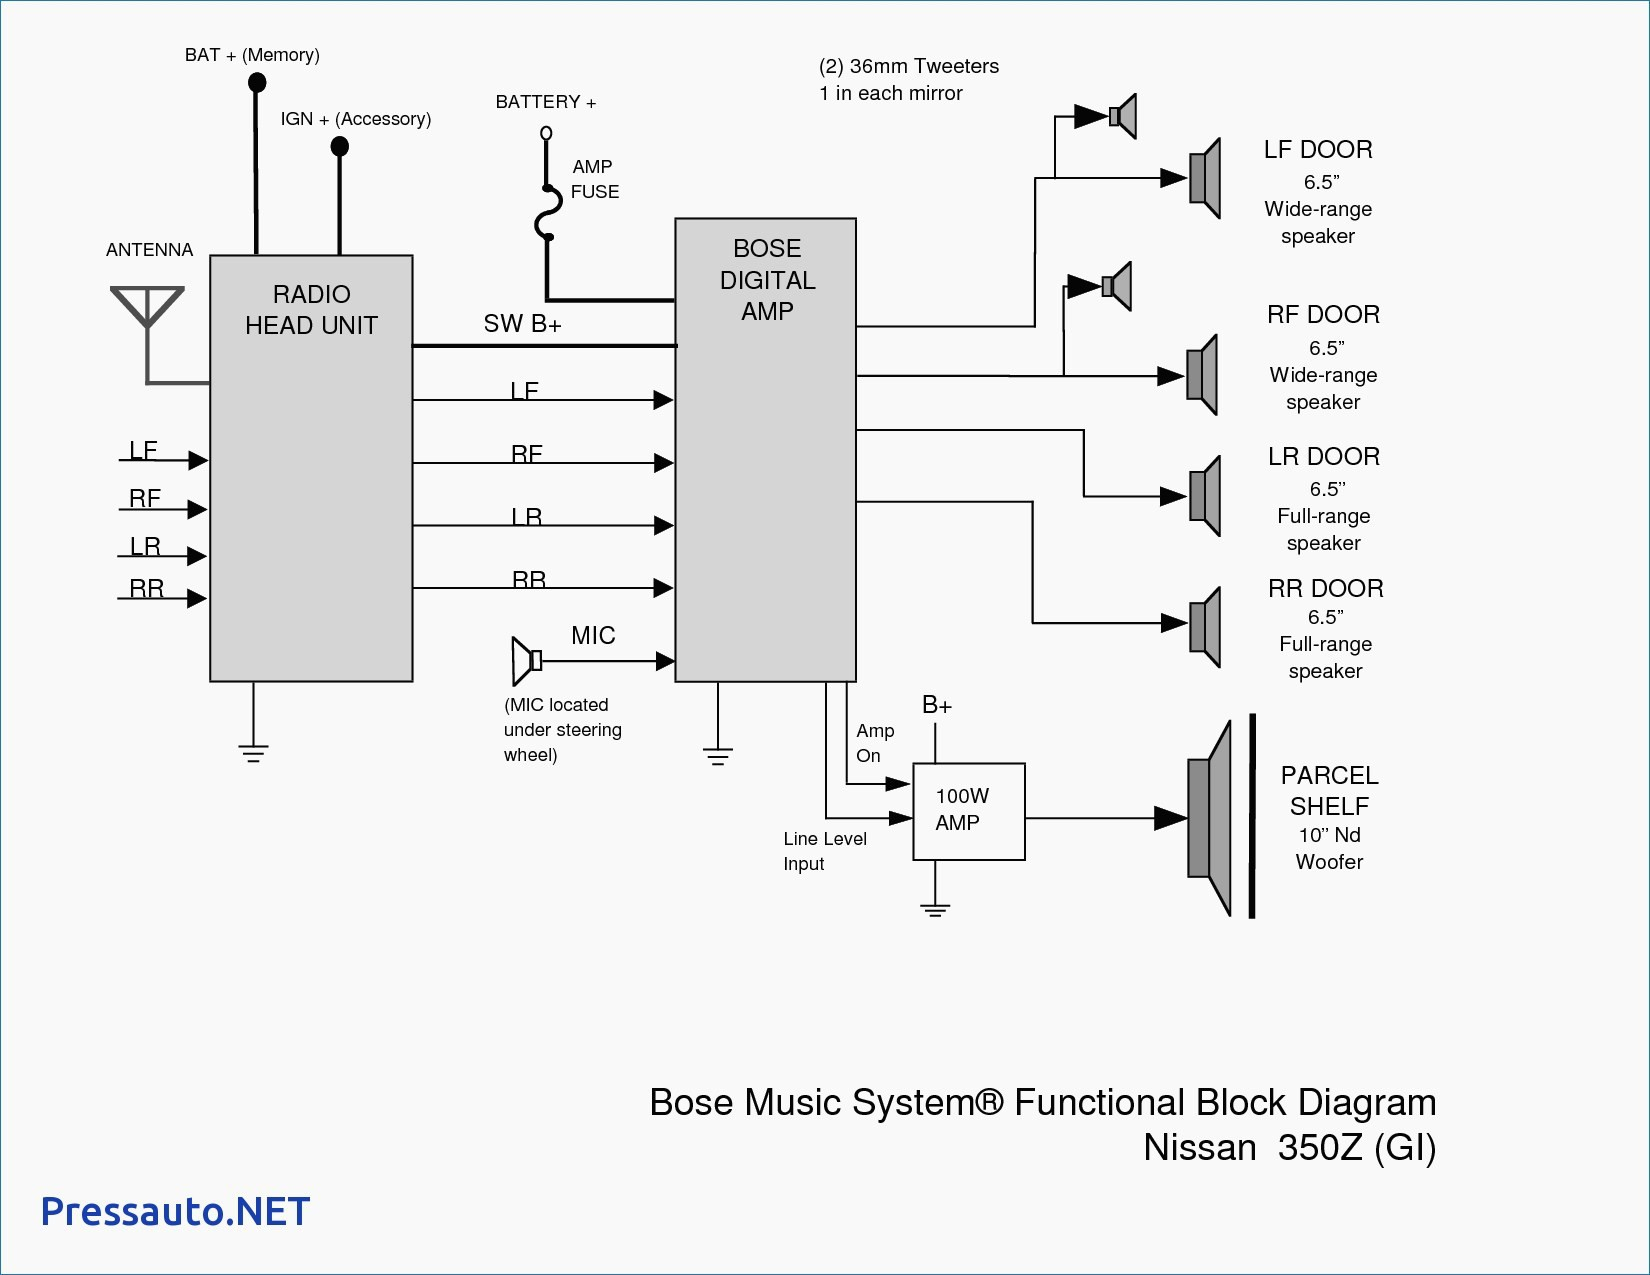 bose amp wiring diagram Download-Old Fashioned Bose Car Amplifier Wiring  Diagram Motif Electrical 15